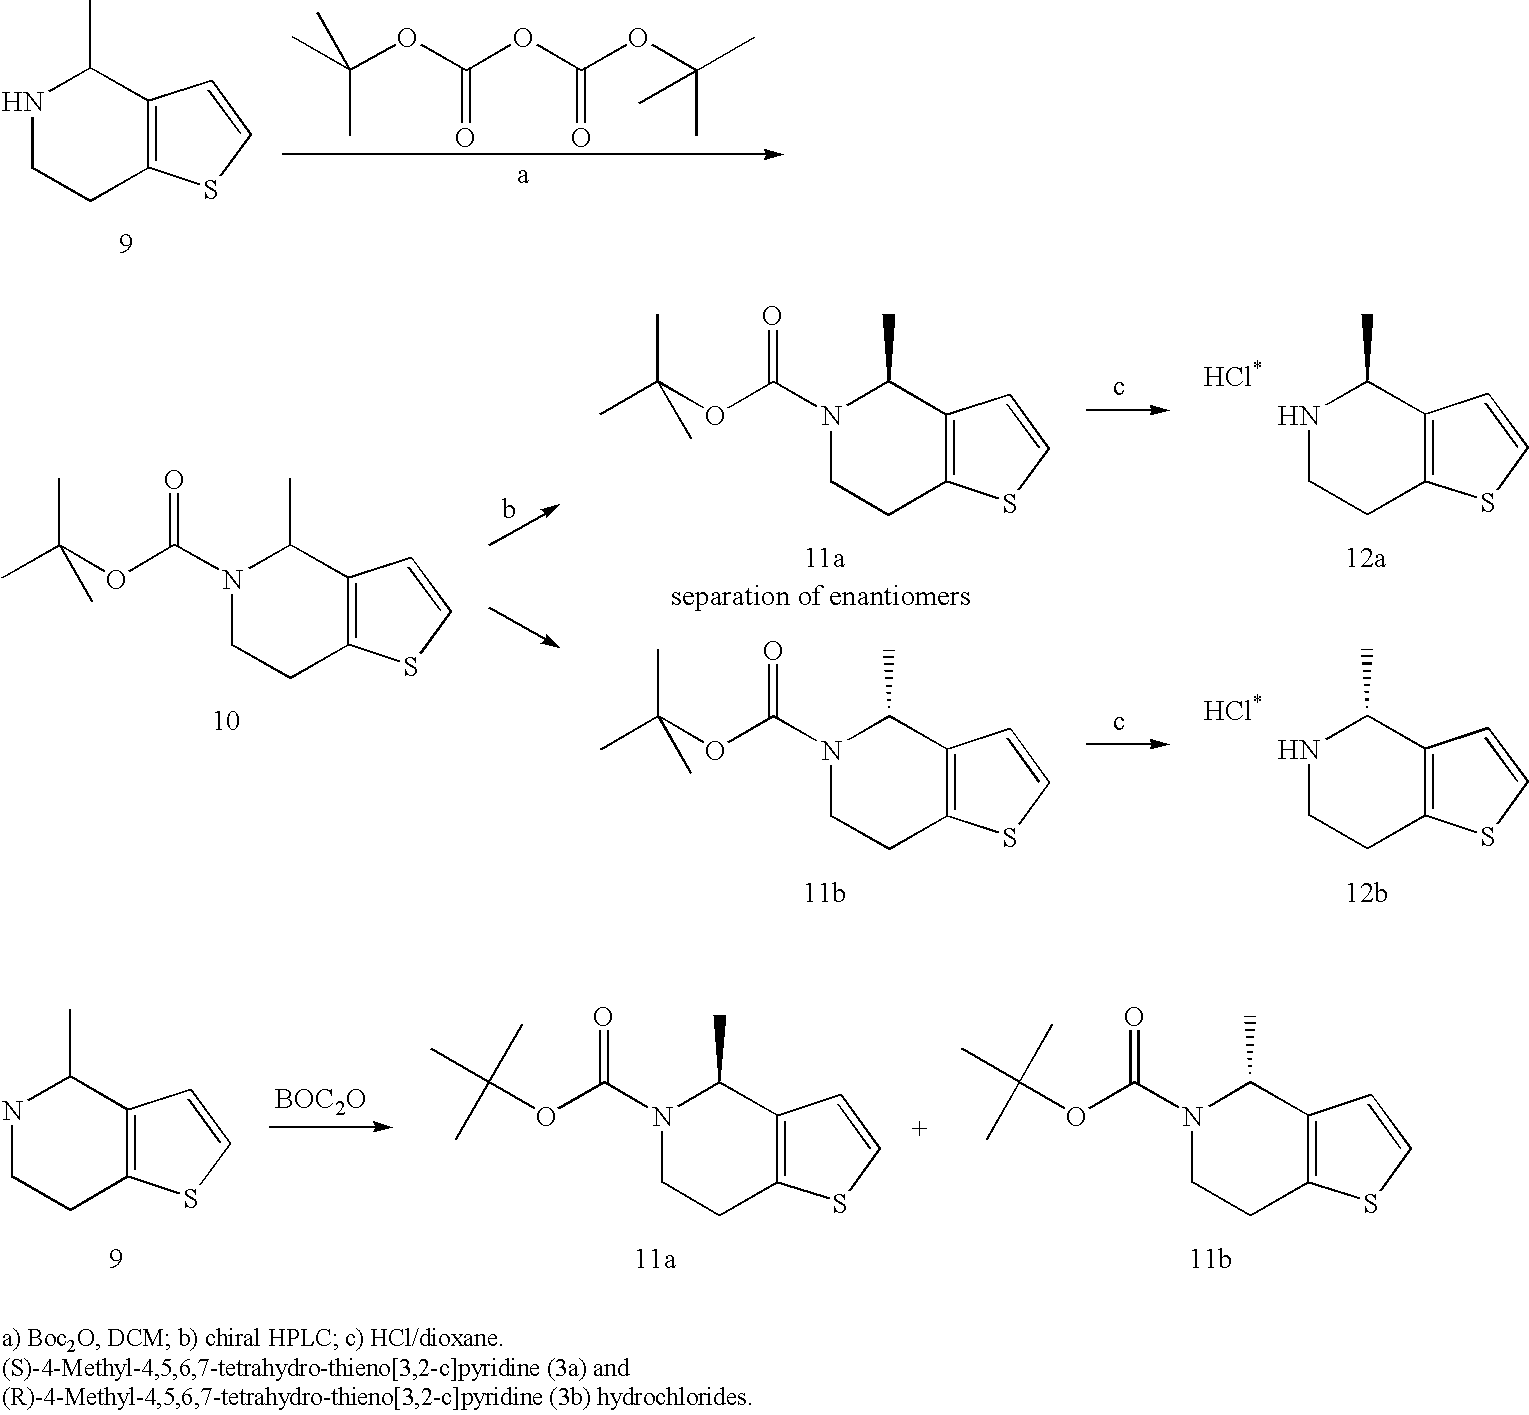 US20080039476A1 - Pyrazolopyrimidines, a process for their